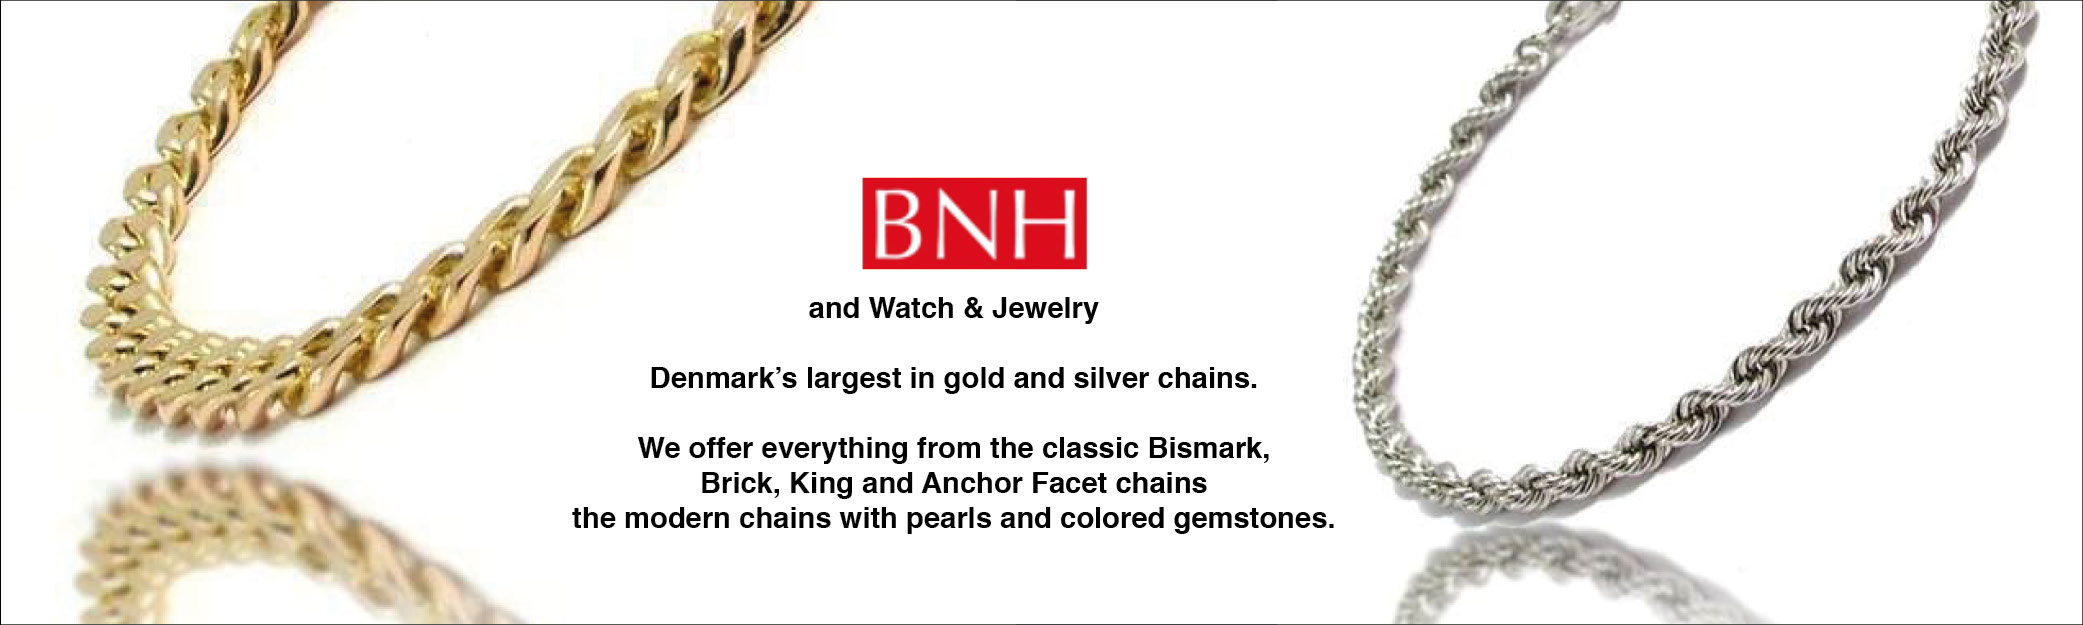 BNH Denmark's famous classic gold and silver bracelets and necklaces